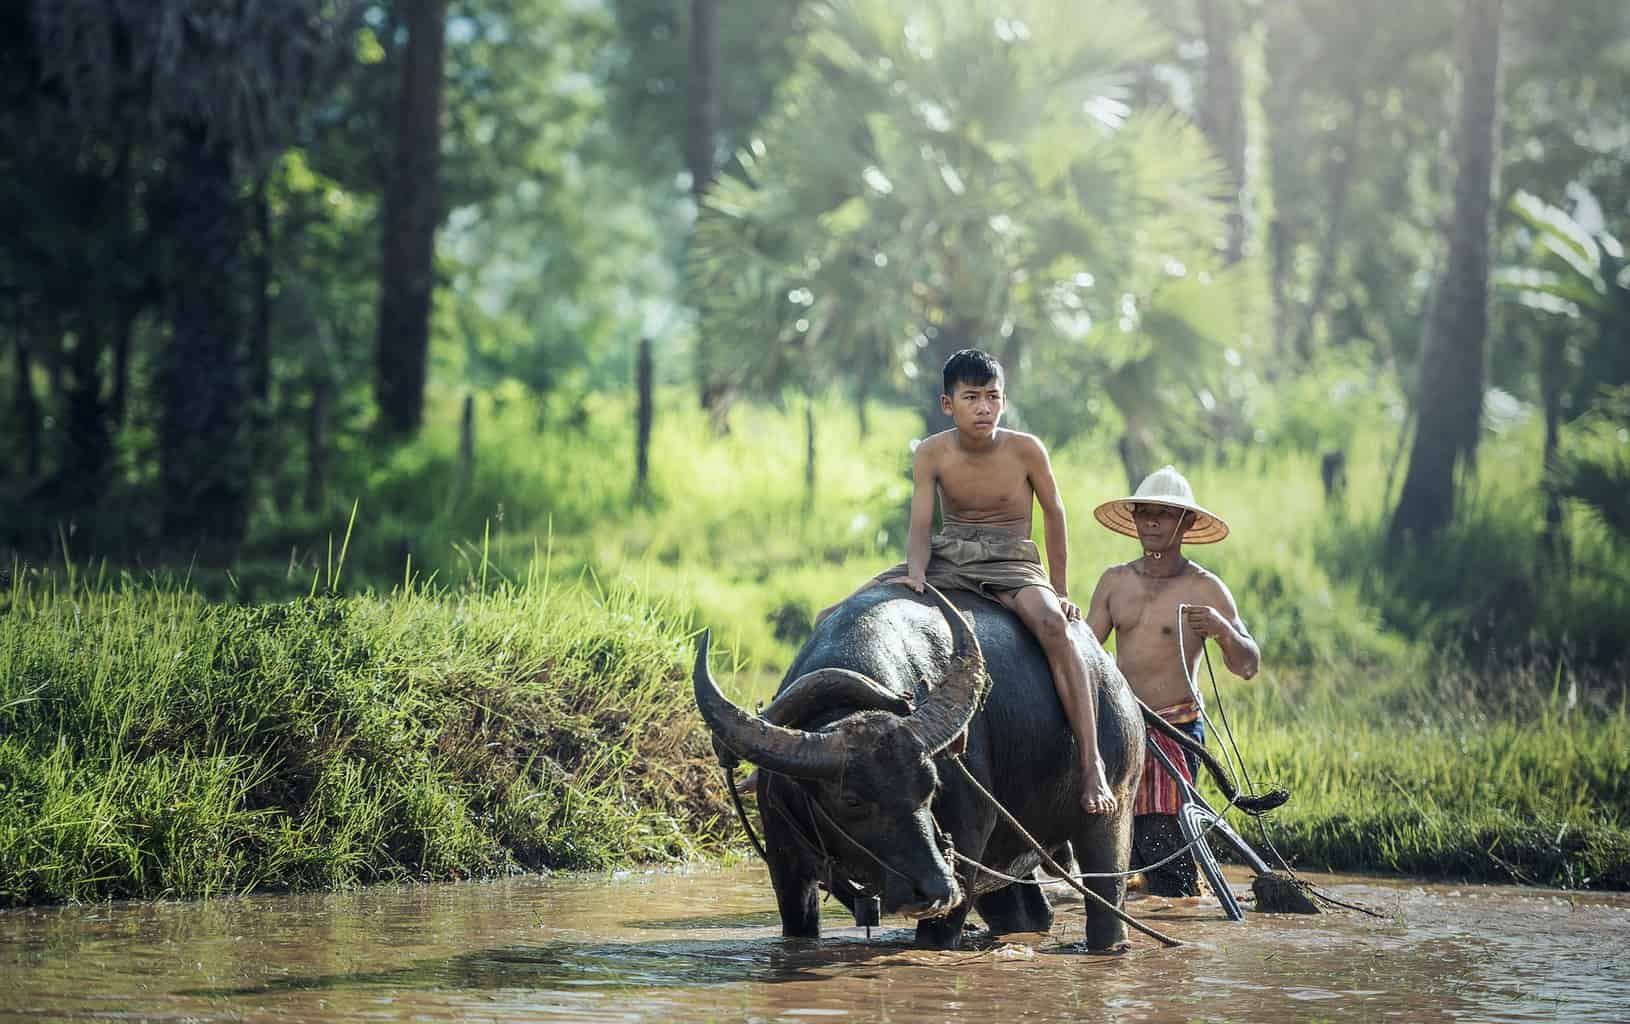 Two shirtless men riding on a buffalo in a river